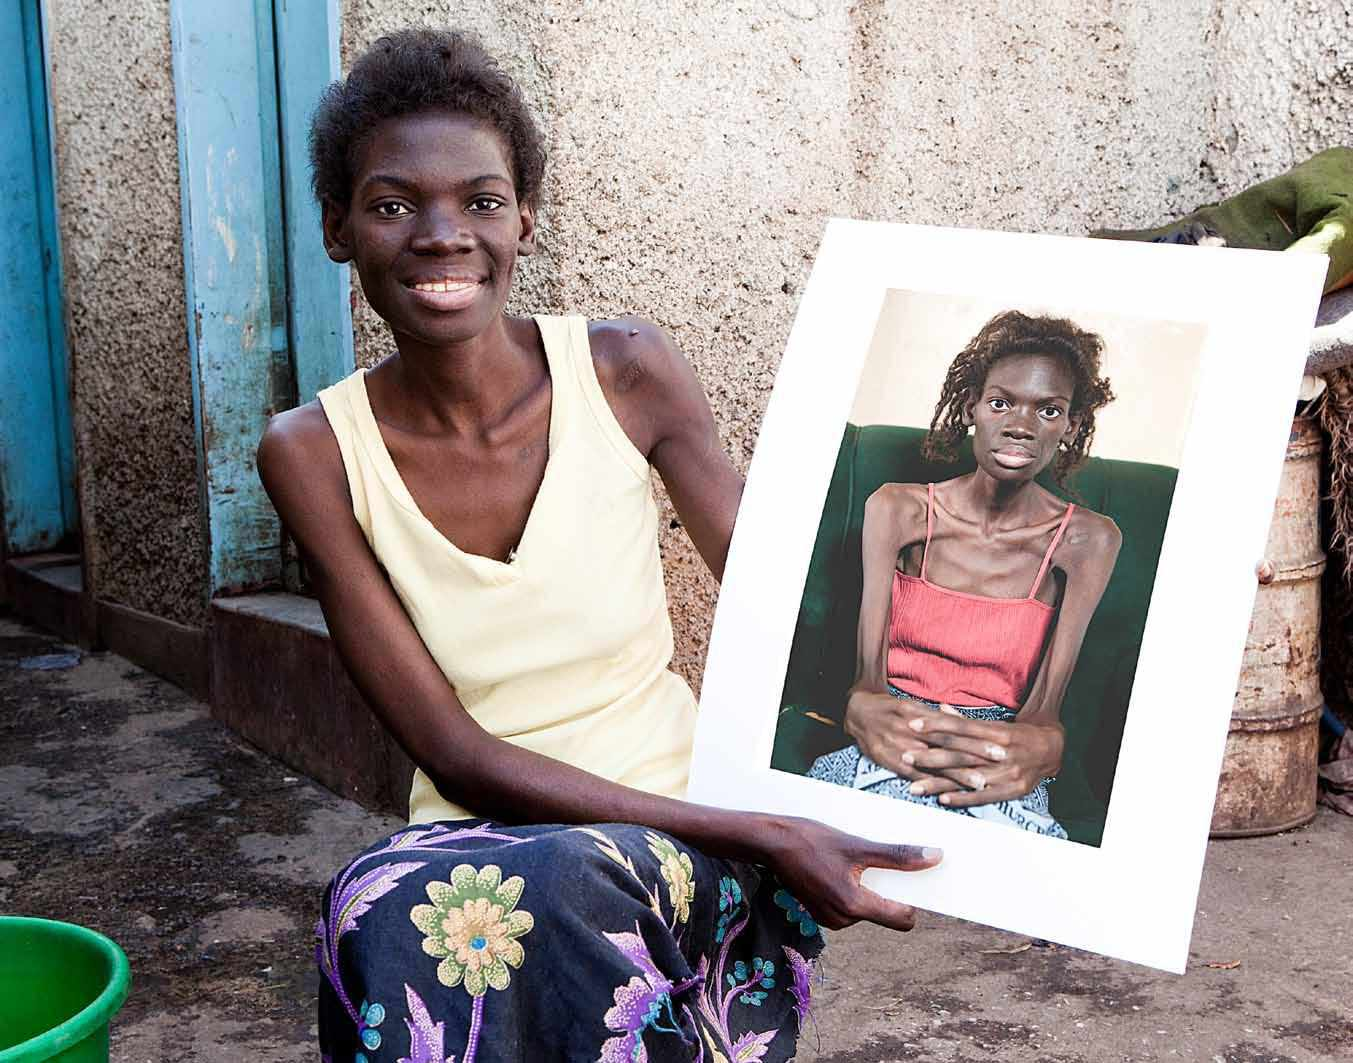 woman showing a picture of herself from the lazarus effect film